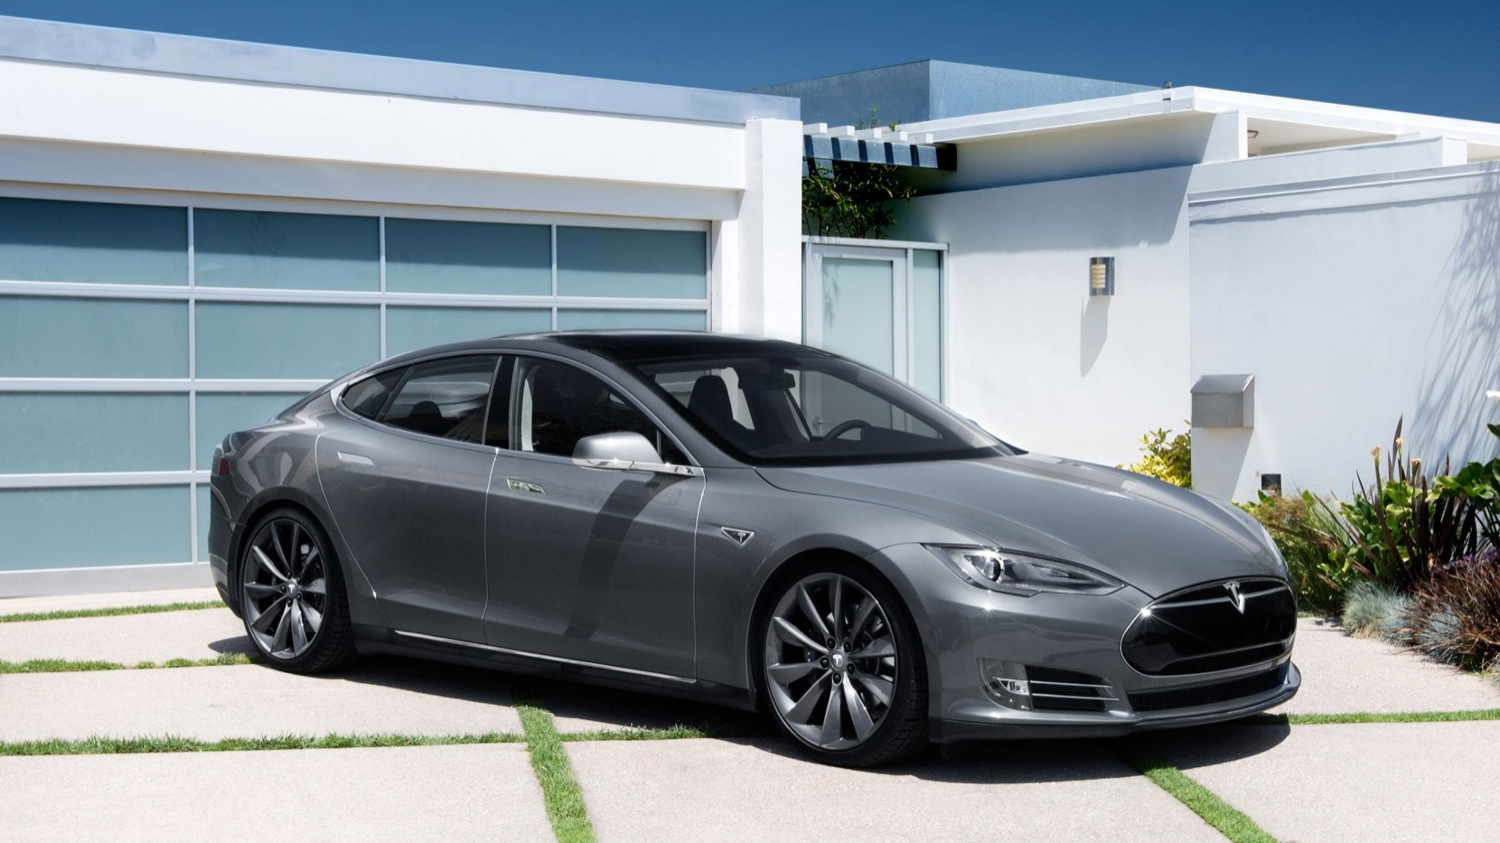 Tesla Model S Hacked, Patch Promptly Released | Motrolix